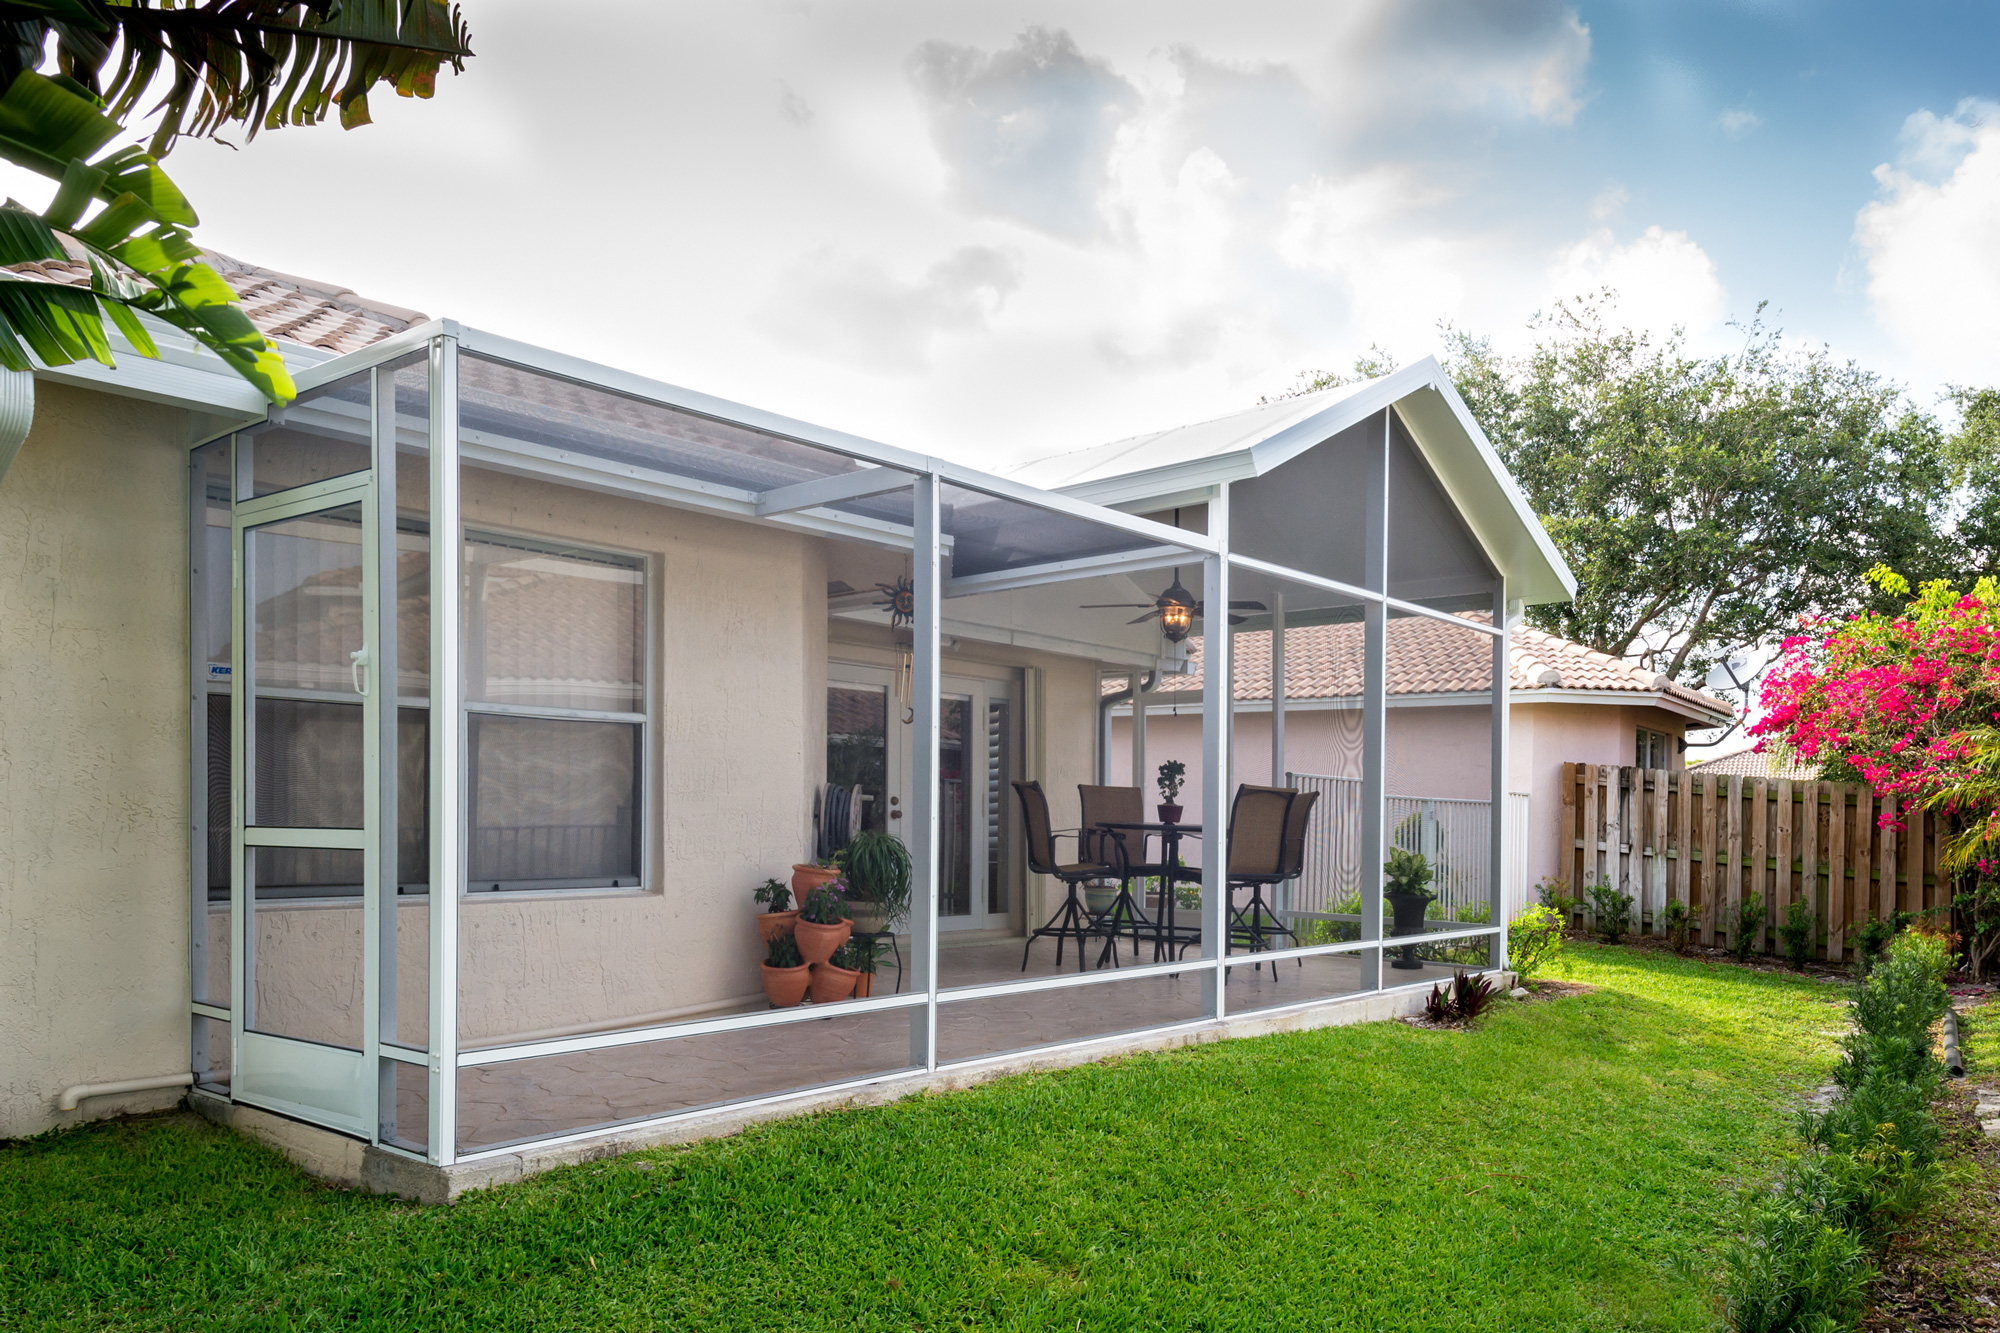 This-screened-patio-enclosure-is-half-screen-roof-half-solid-patio-cover-the-best-of-both-worlds.